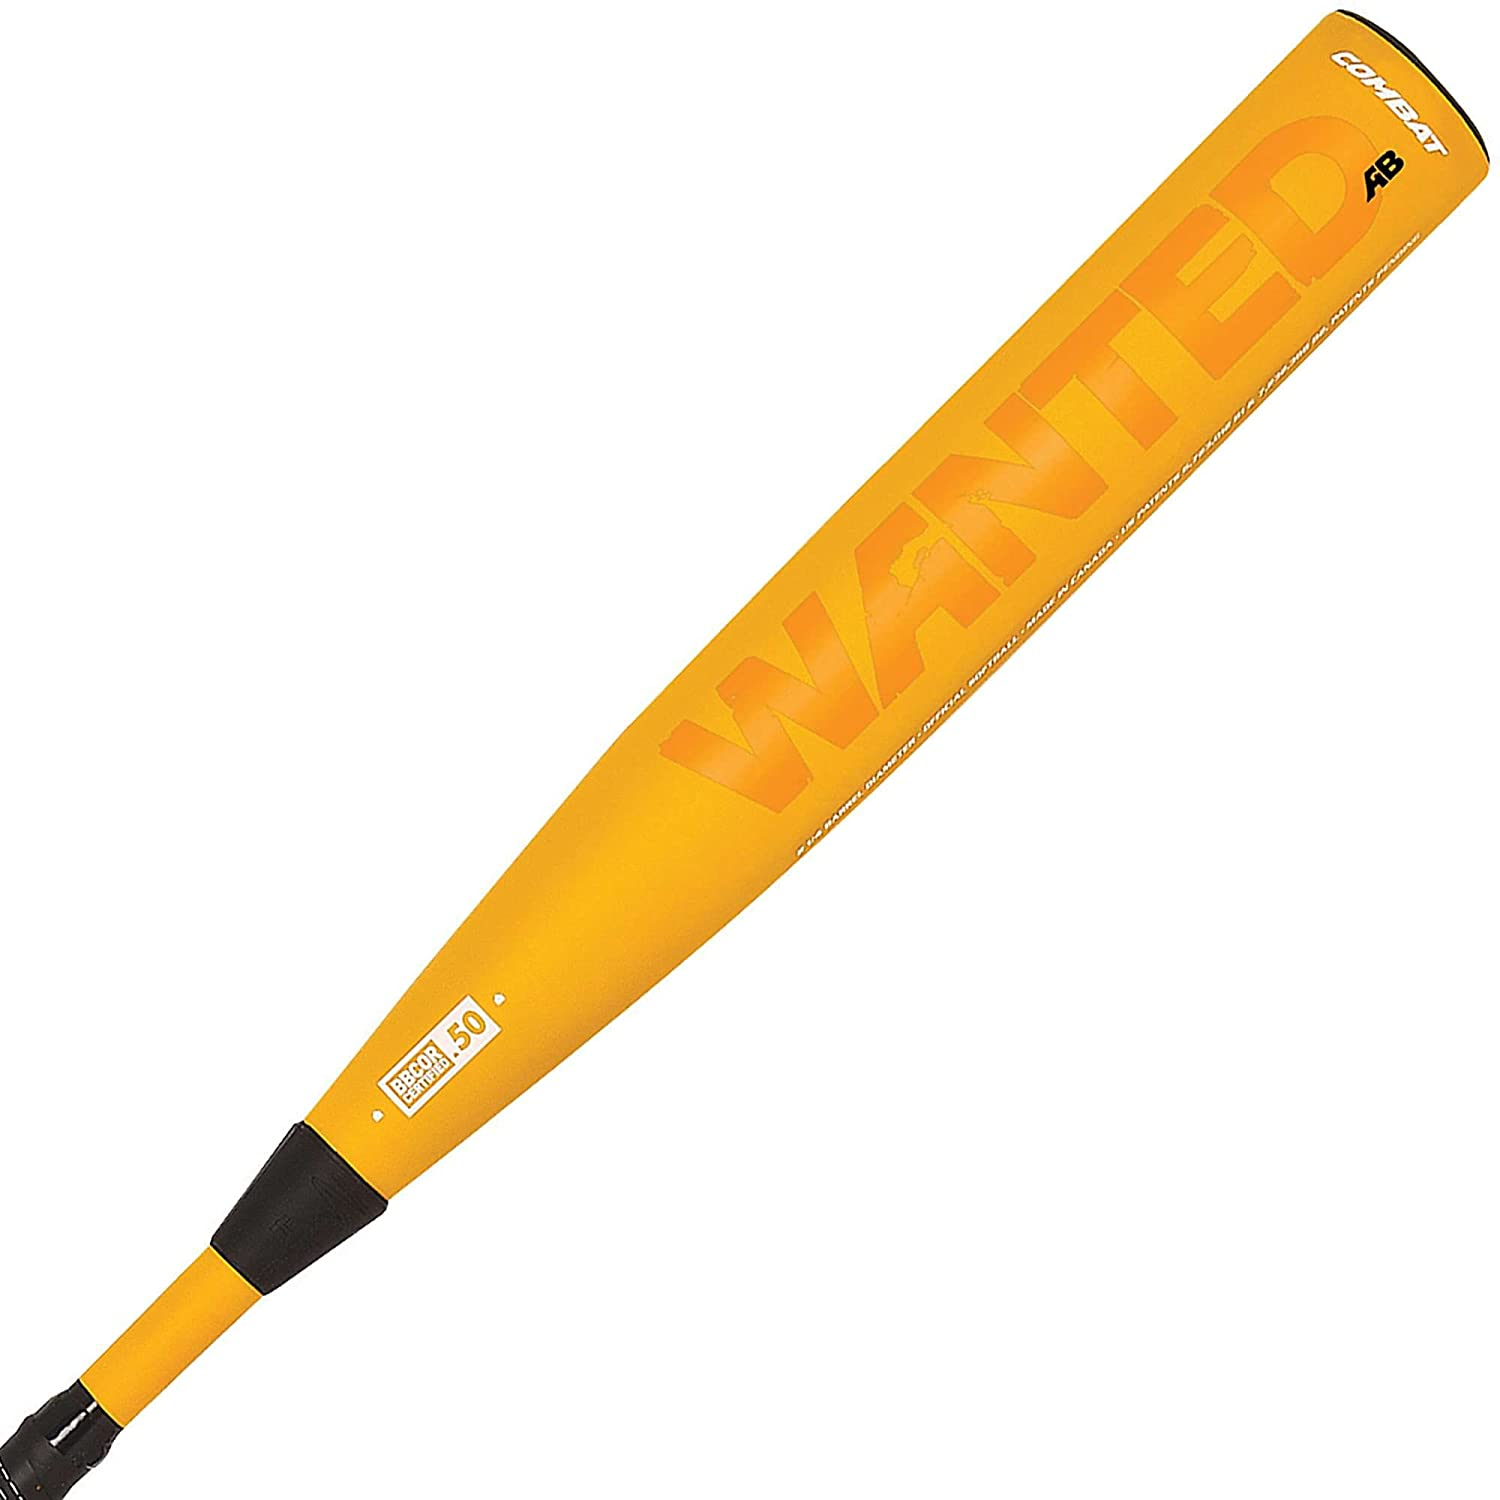 Combat 2014 Wanted Ab 3 Adult Baseball Bat (Bbcor), 34in